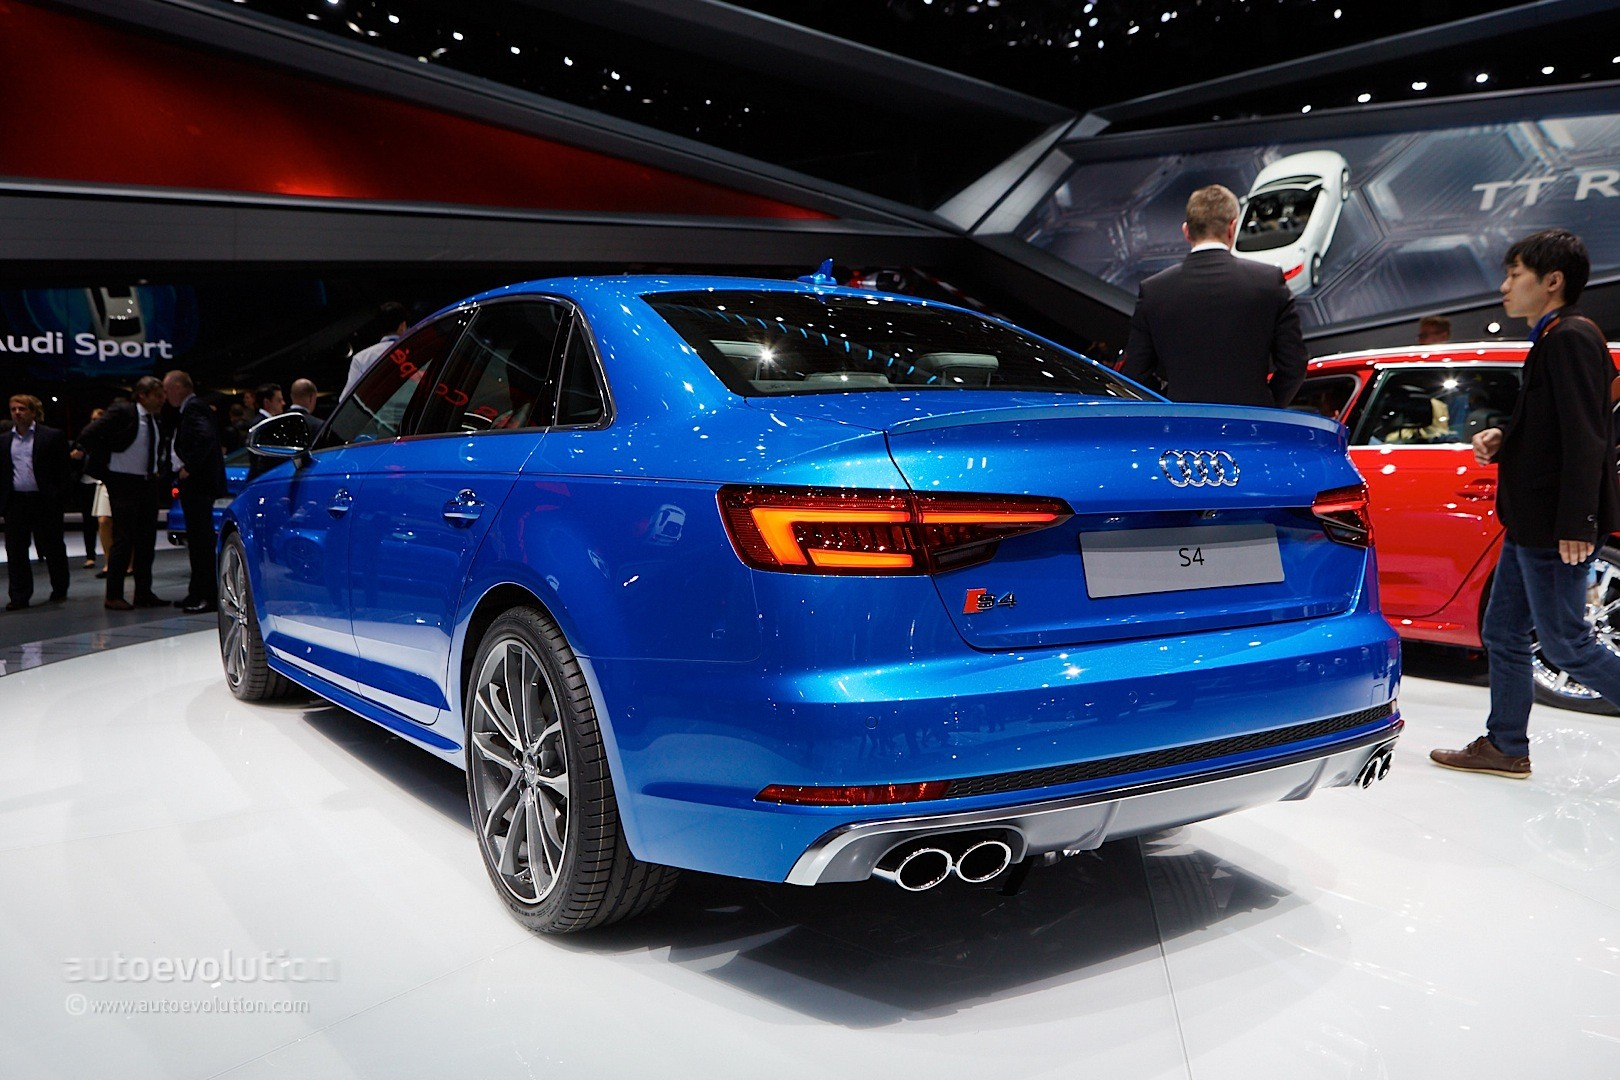 2015 audi s4 sedan and avant launched in germany with 354 hp turbo 2016 audi s4 sedan live photos from frankfurt iaa sciox Images